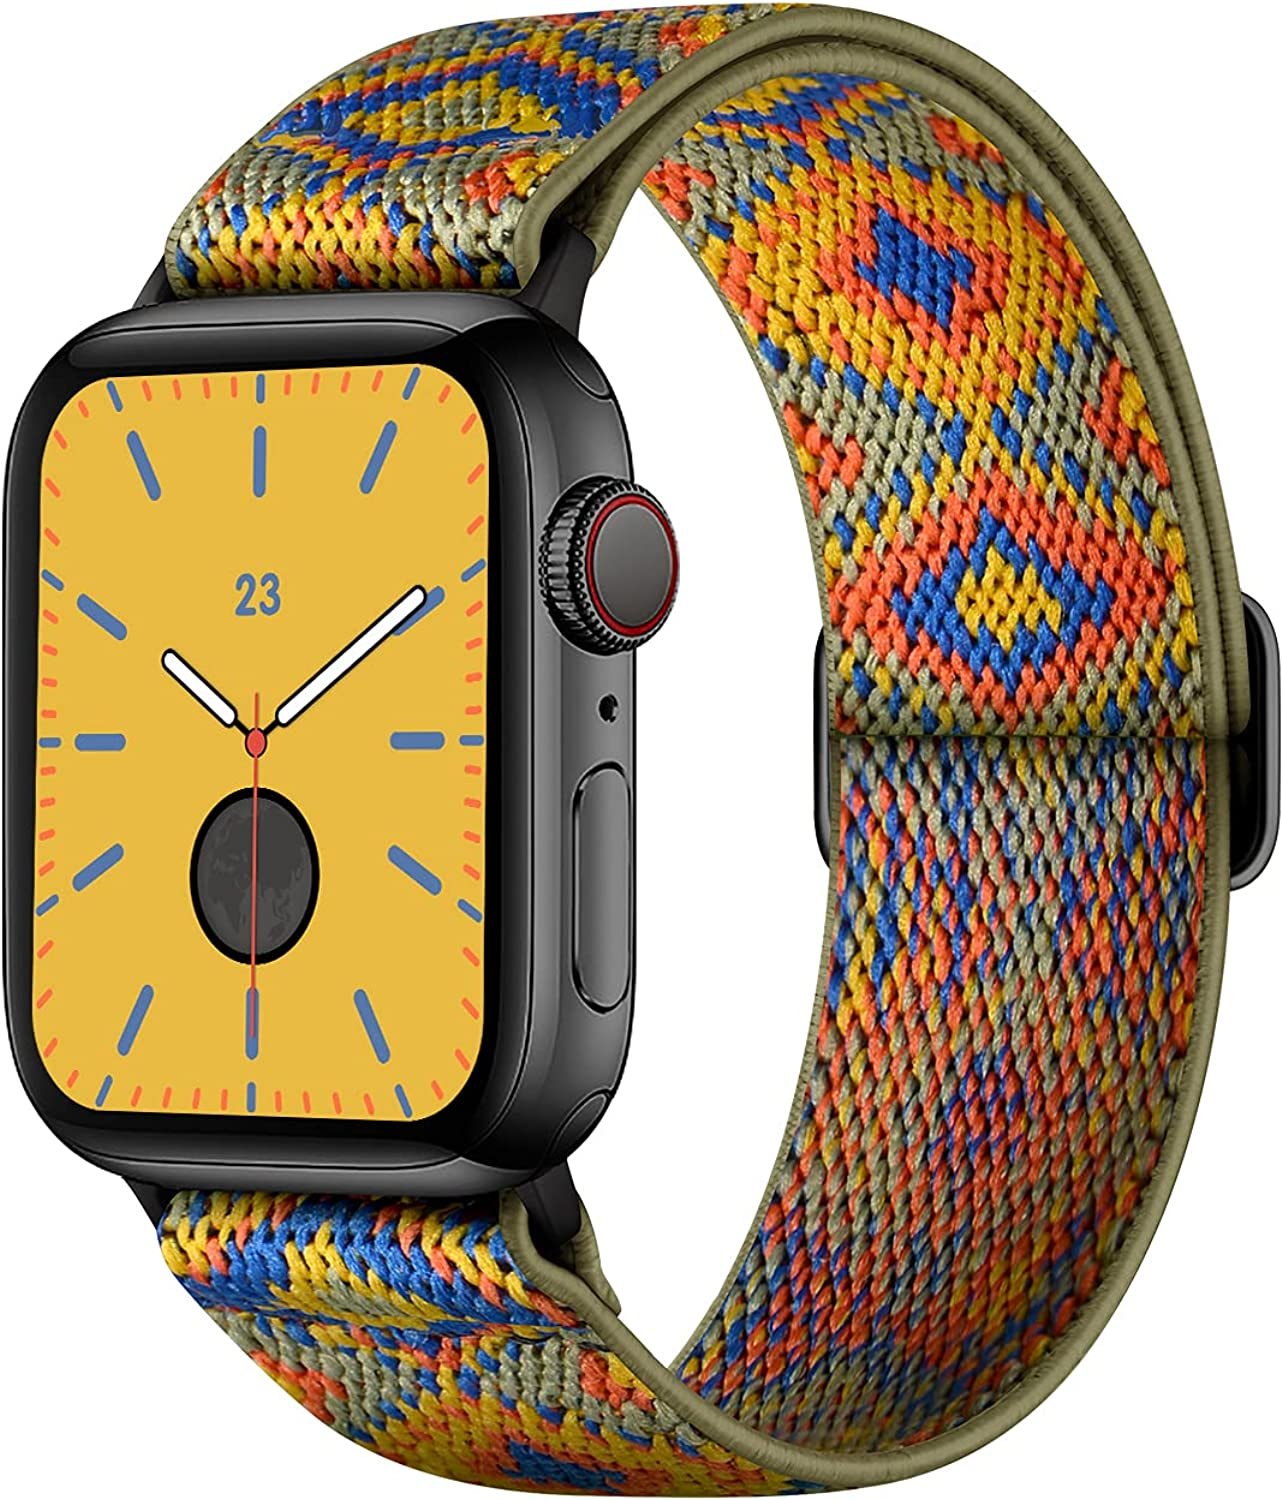 AMANECER Stretchy Nylon Watch Bands Compatible with Apple Watch Series 6/5/4/3/2/1 SE, Adjustable Braided Elastic Sport Solo Loop Bands for iWatch